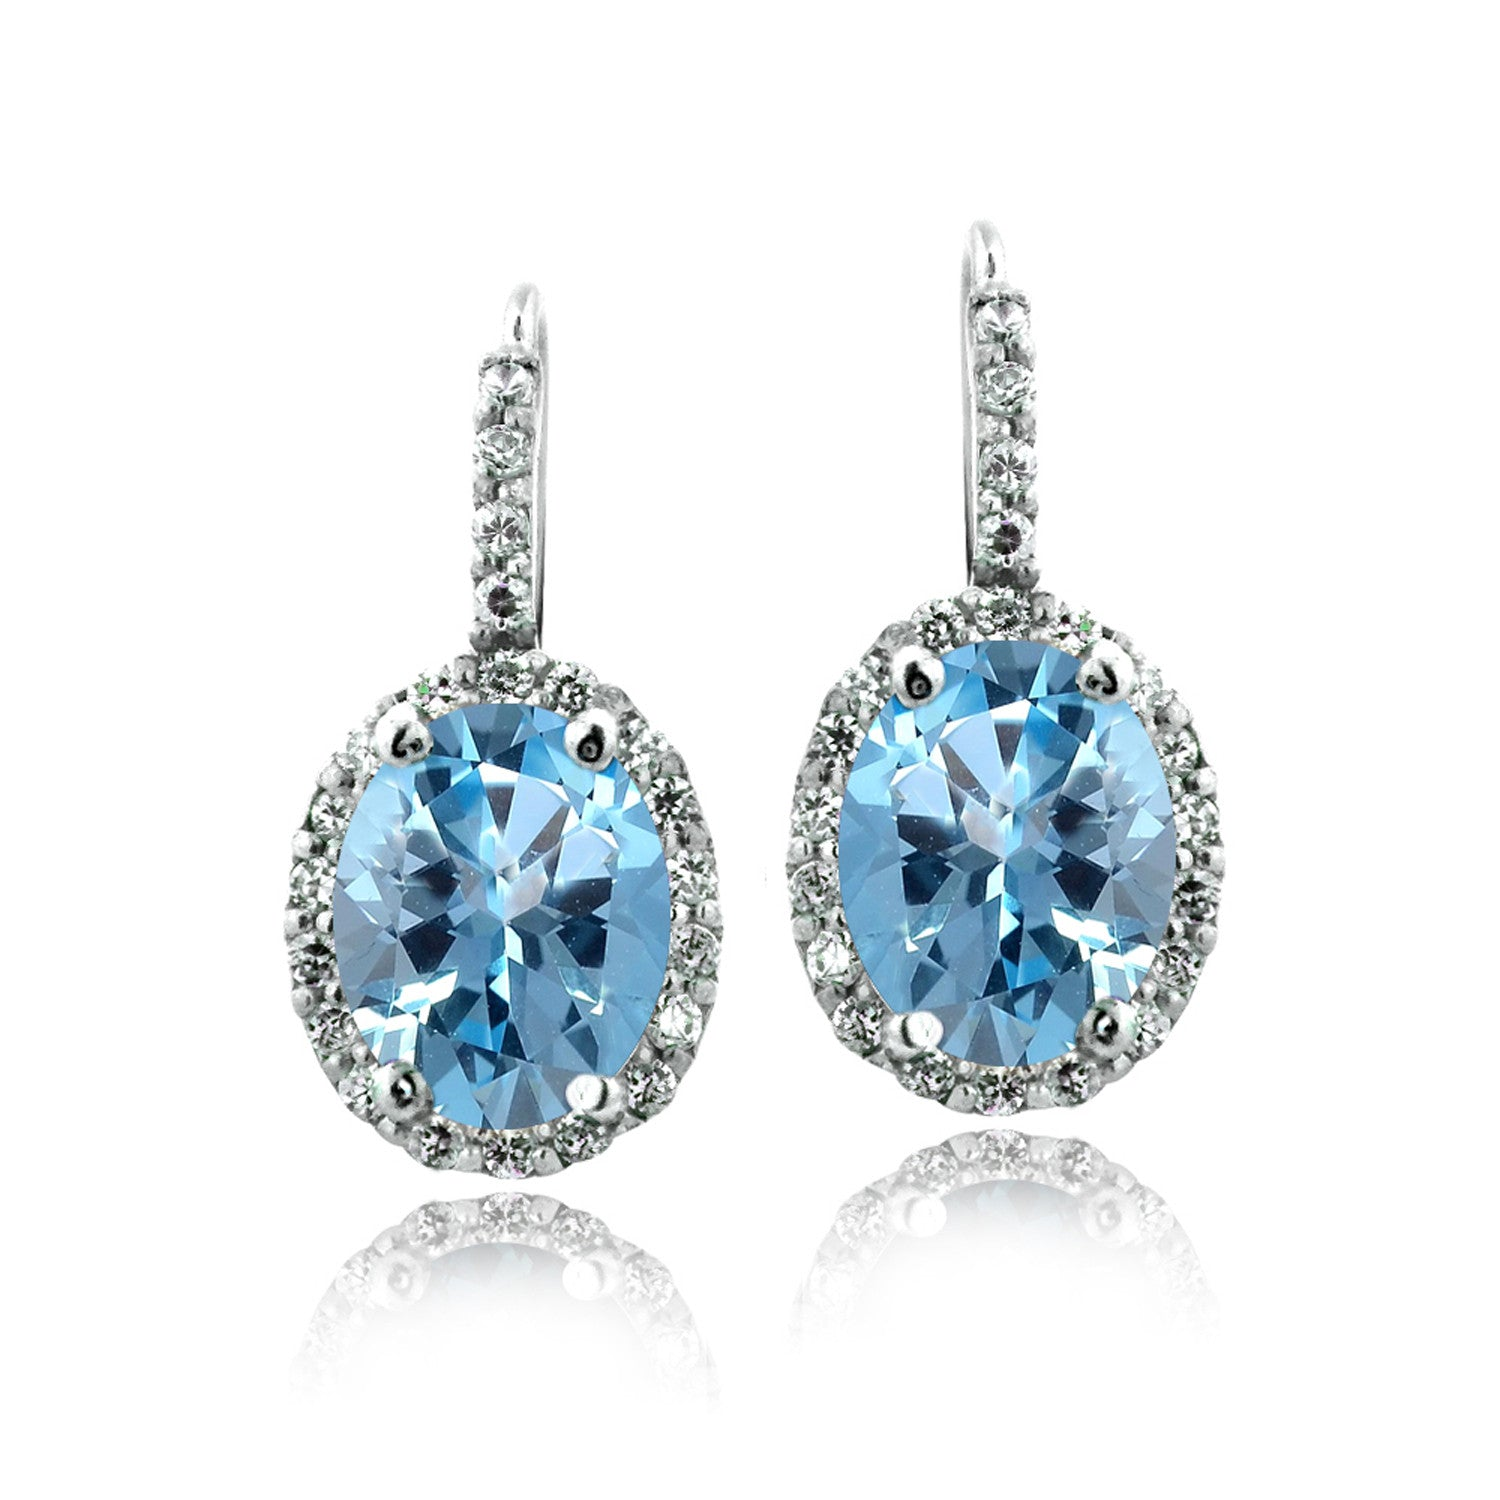 Oval Cut Gemstone Accent Sterling Silver Leverback Birthstone Earrings - March Aqua CZ